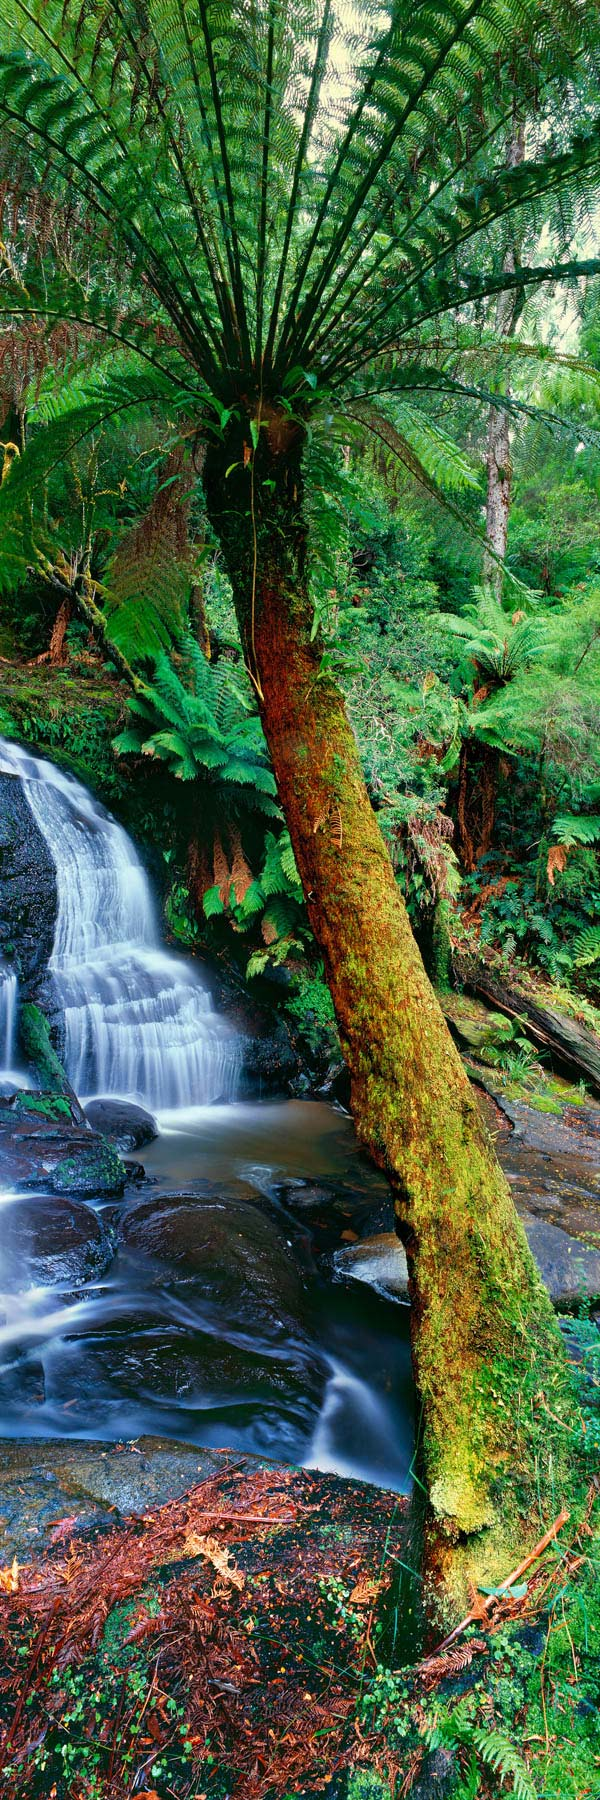 Giant tree fern beside a waterfall, Otway State Forest, Victoria, Australia.